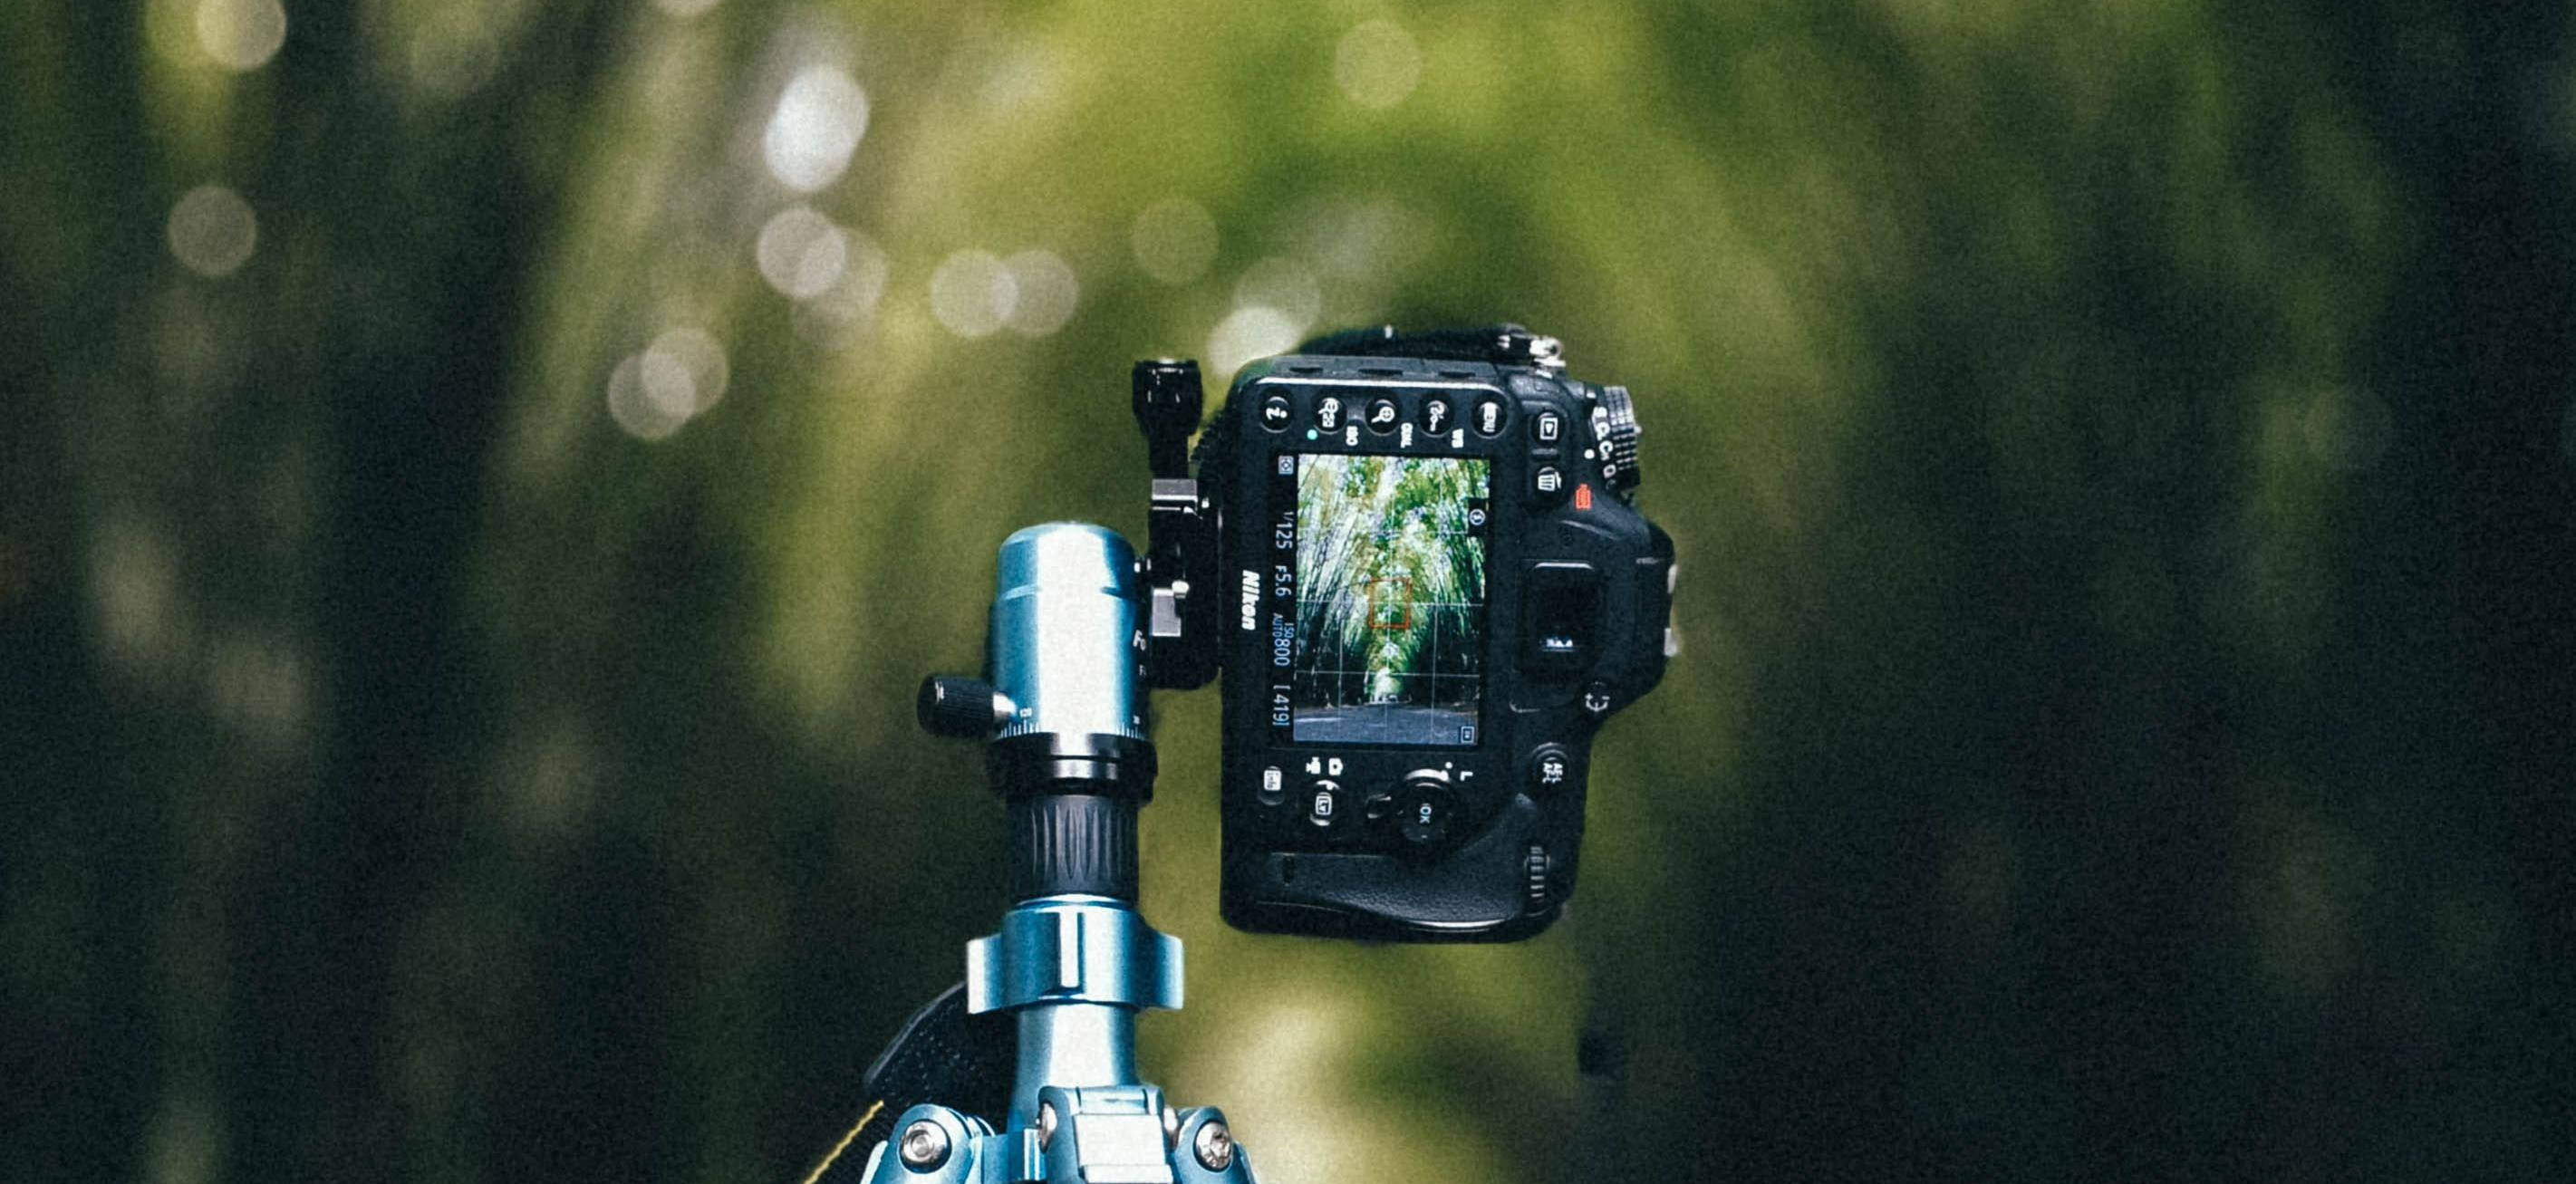 camera on tripod for long exposure photograph